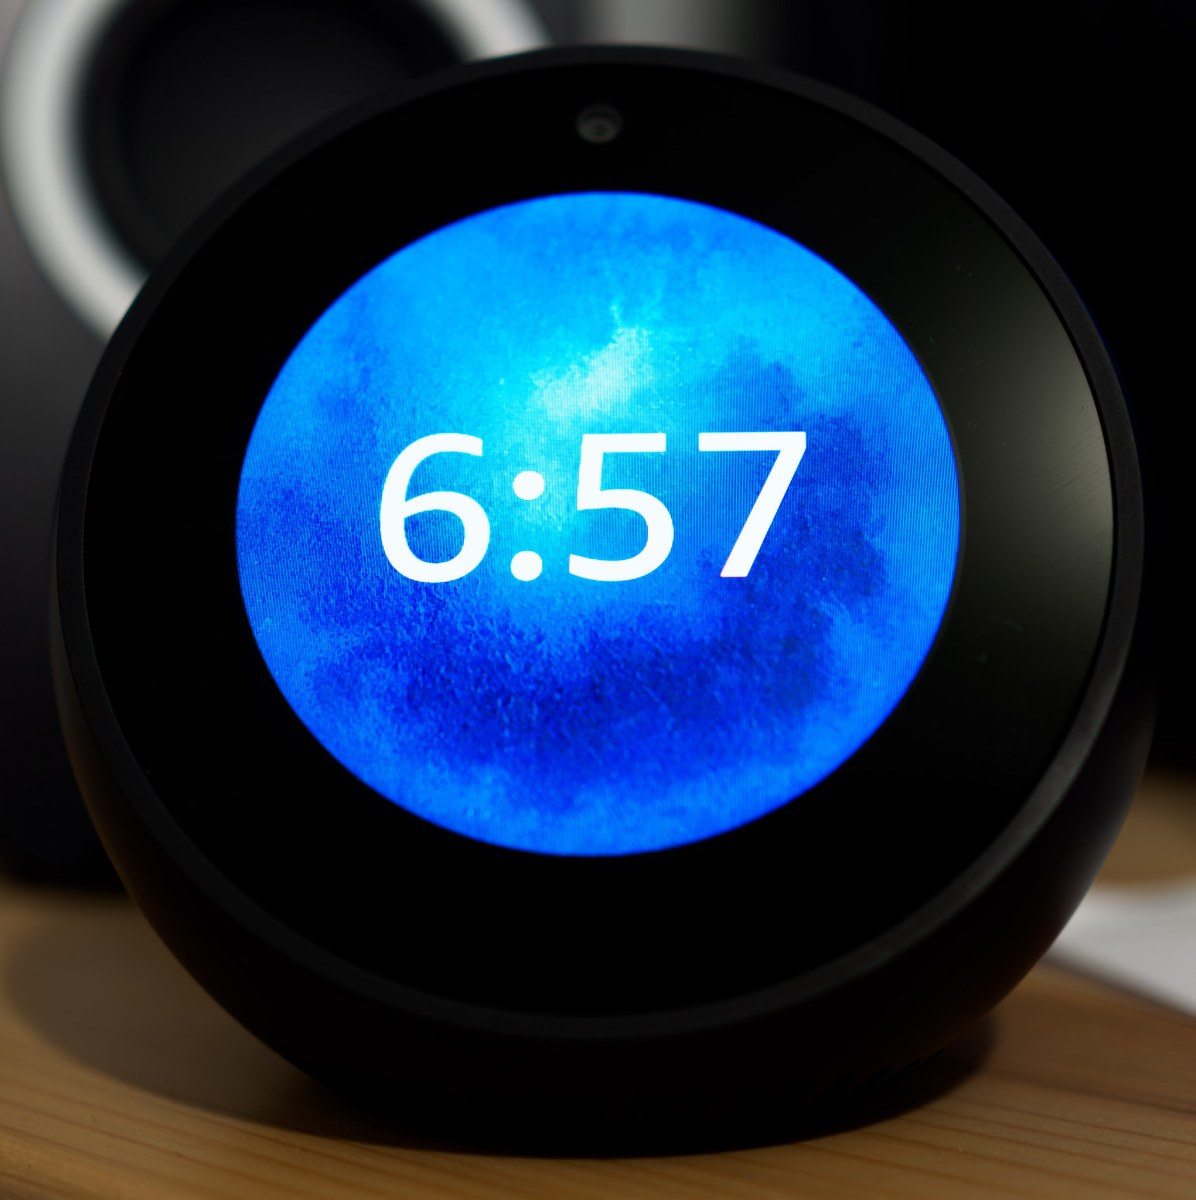 Looking at the Amazon Echo Spot